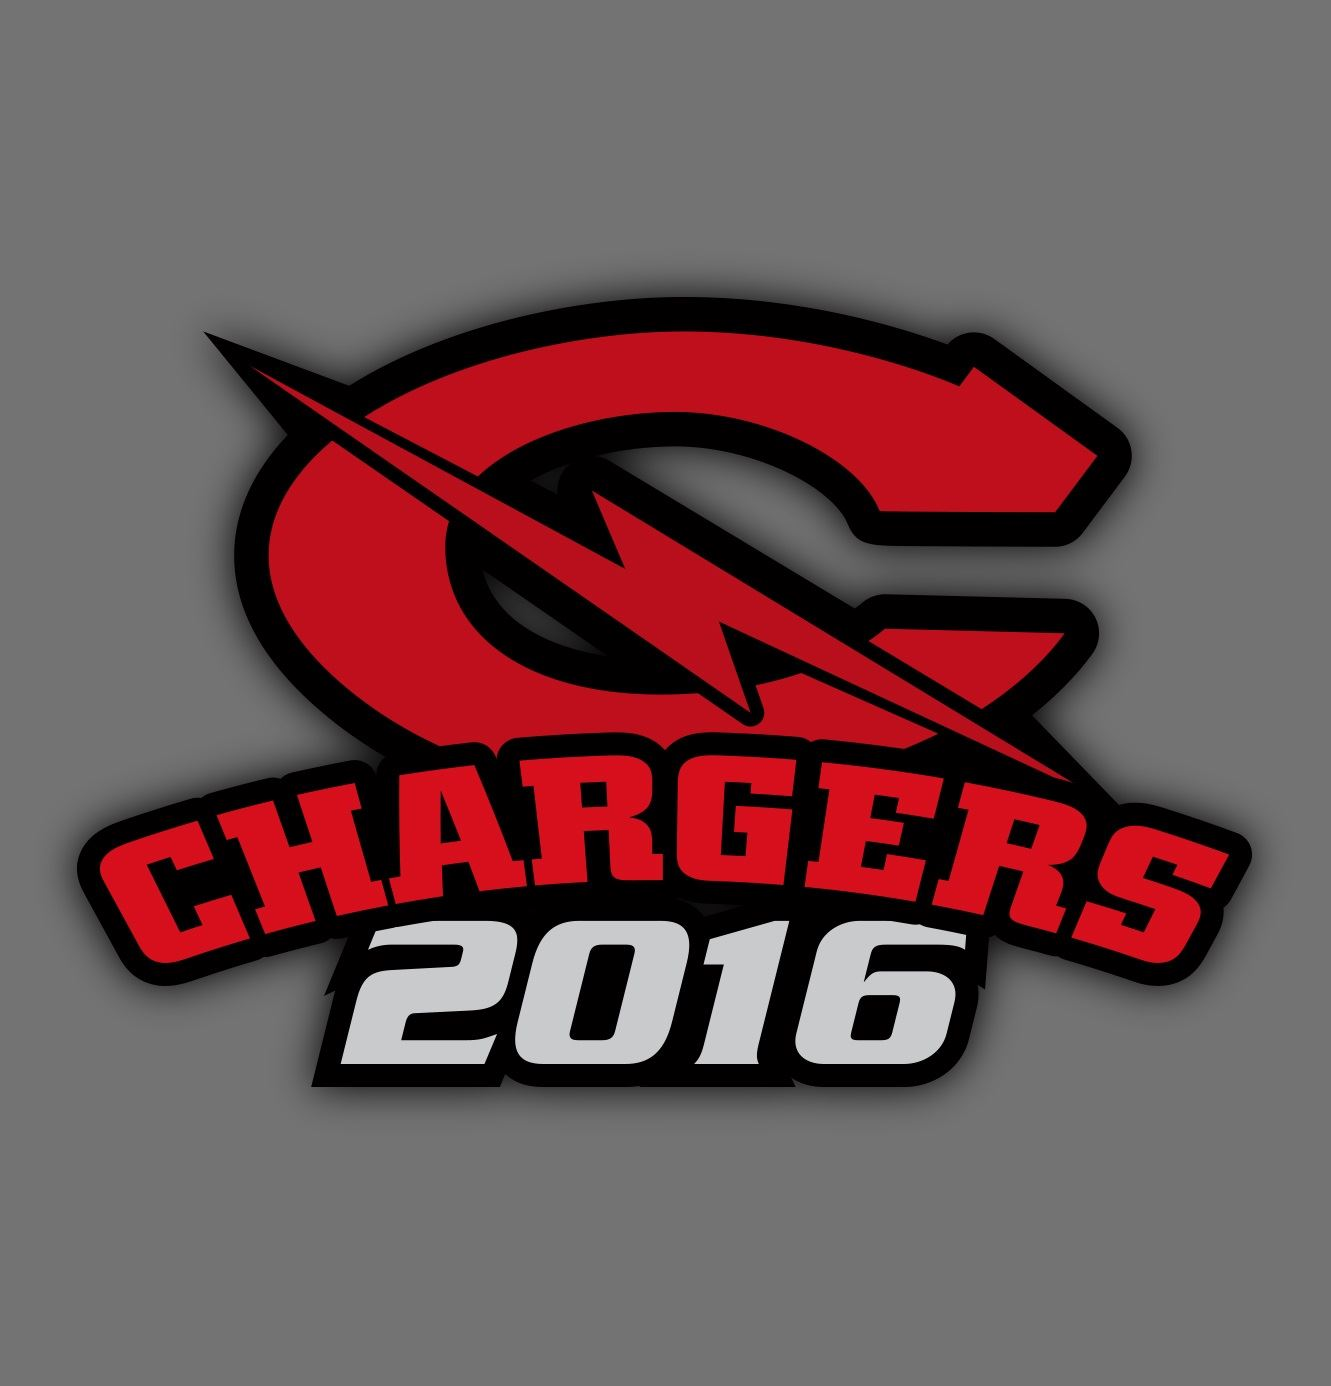 CUSHMO DESIGNS - Chargers Youth Football NSYFL